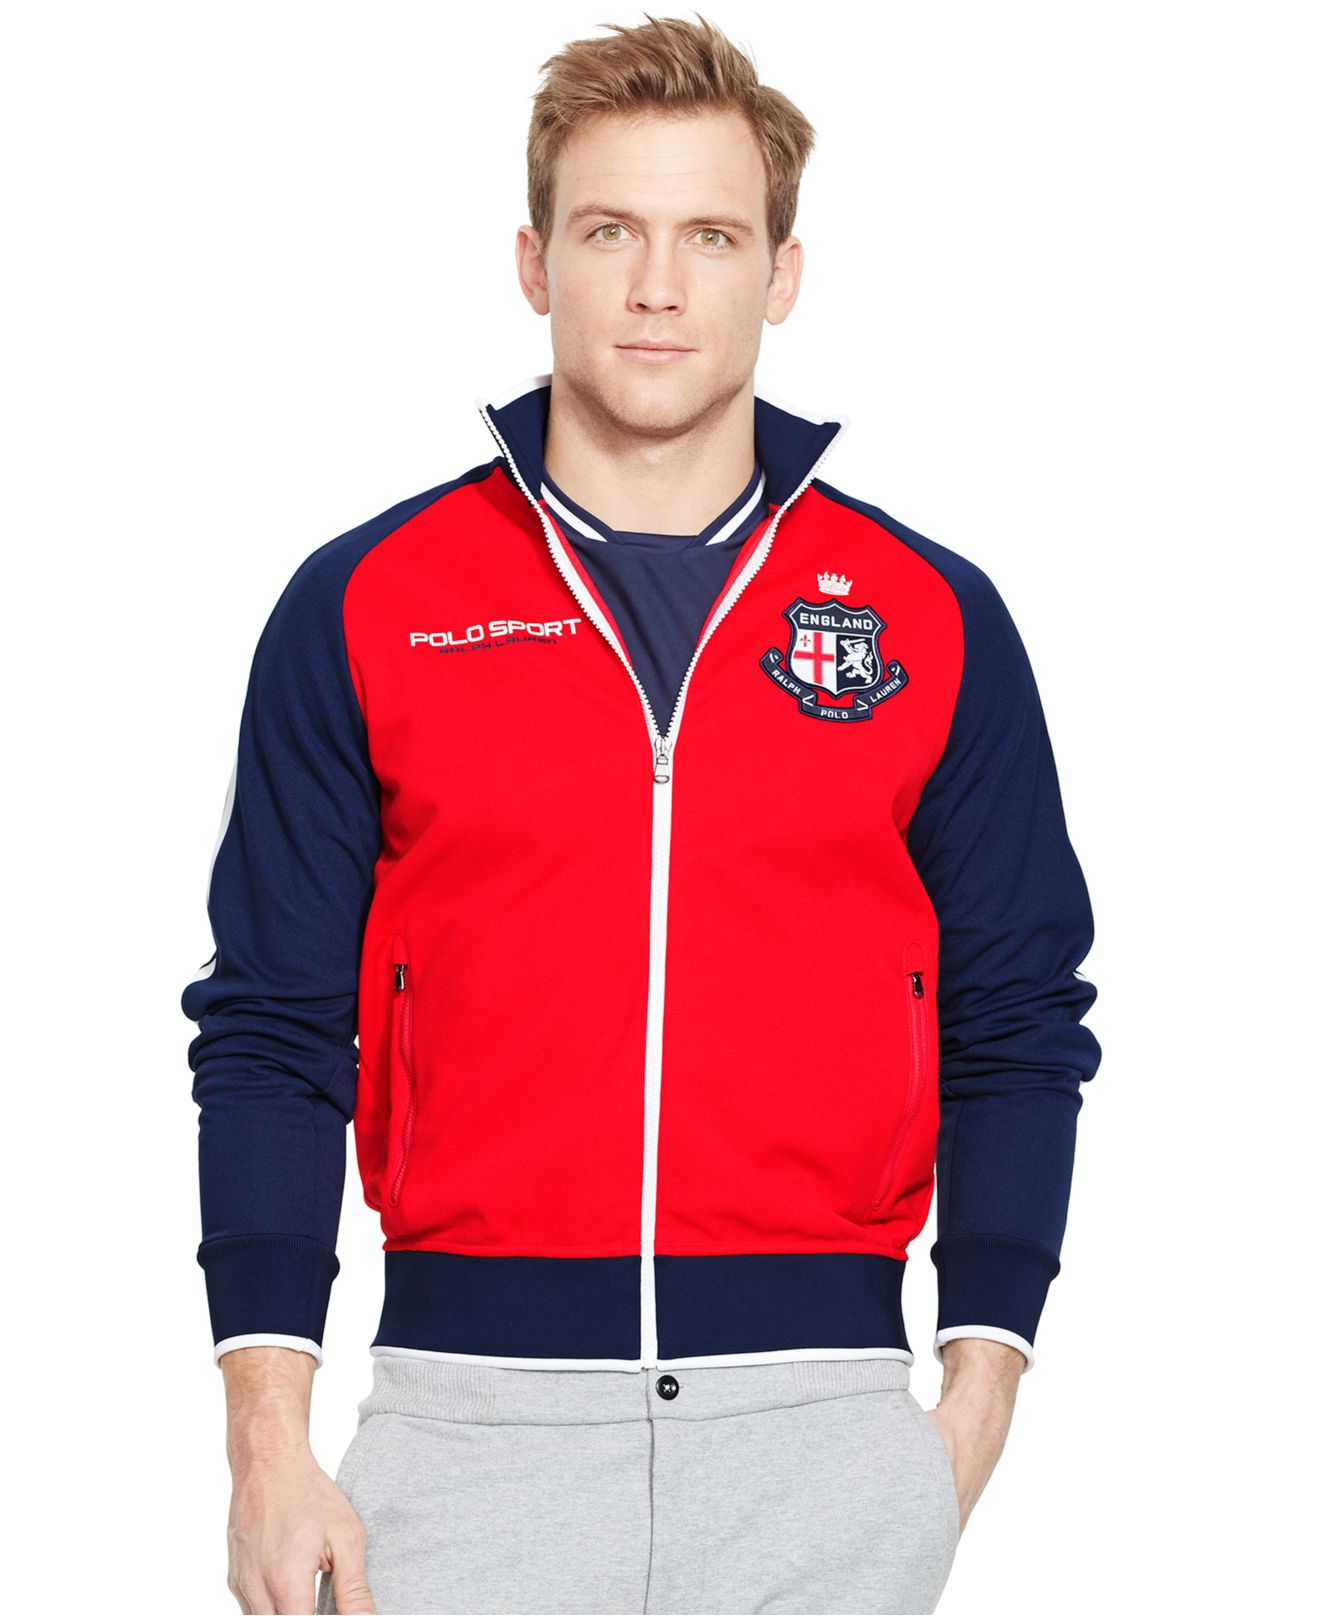 Polo ralph lauren Polo Sport England Pique Track Jacket in Red for ...